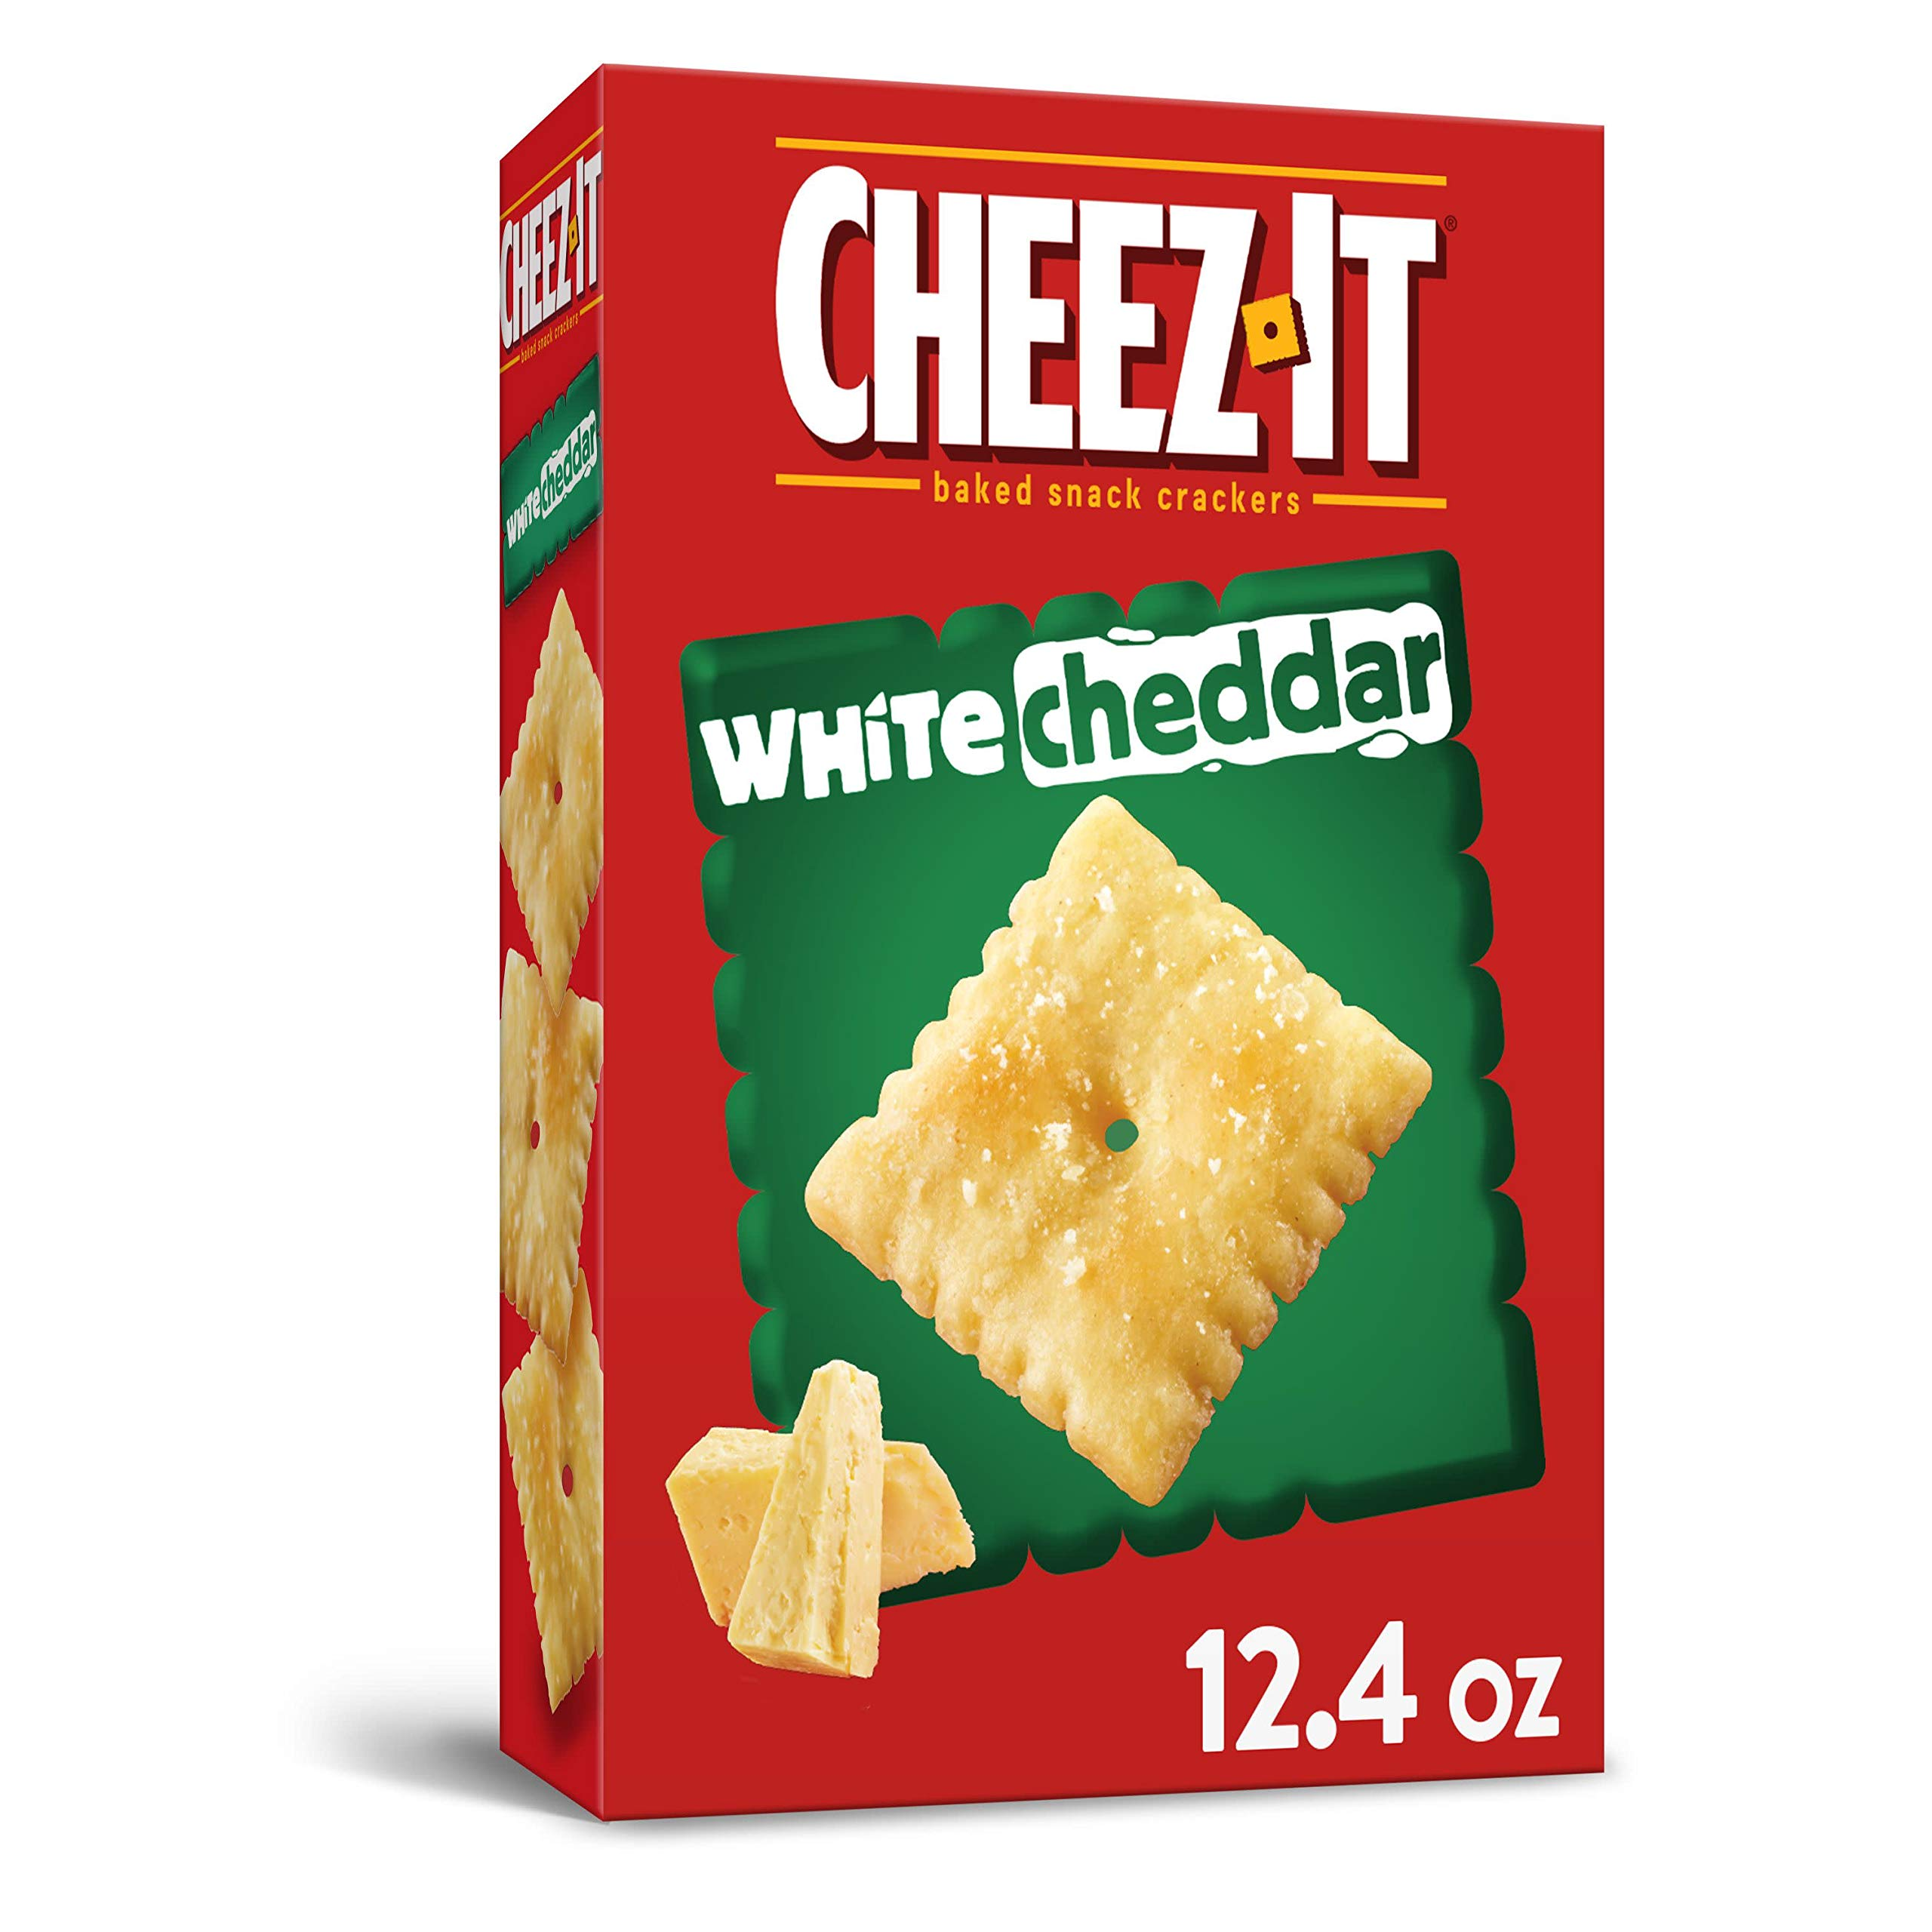 Cheez-It Baked Snack Cheese Crackers, White Cheddar, 12.4 oz Box